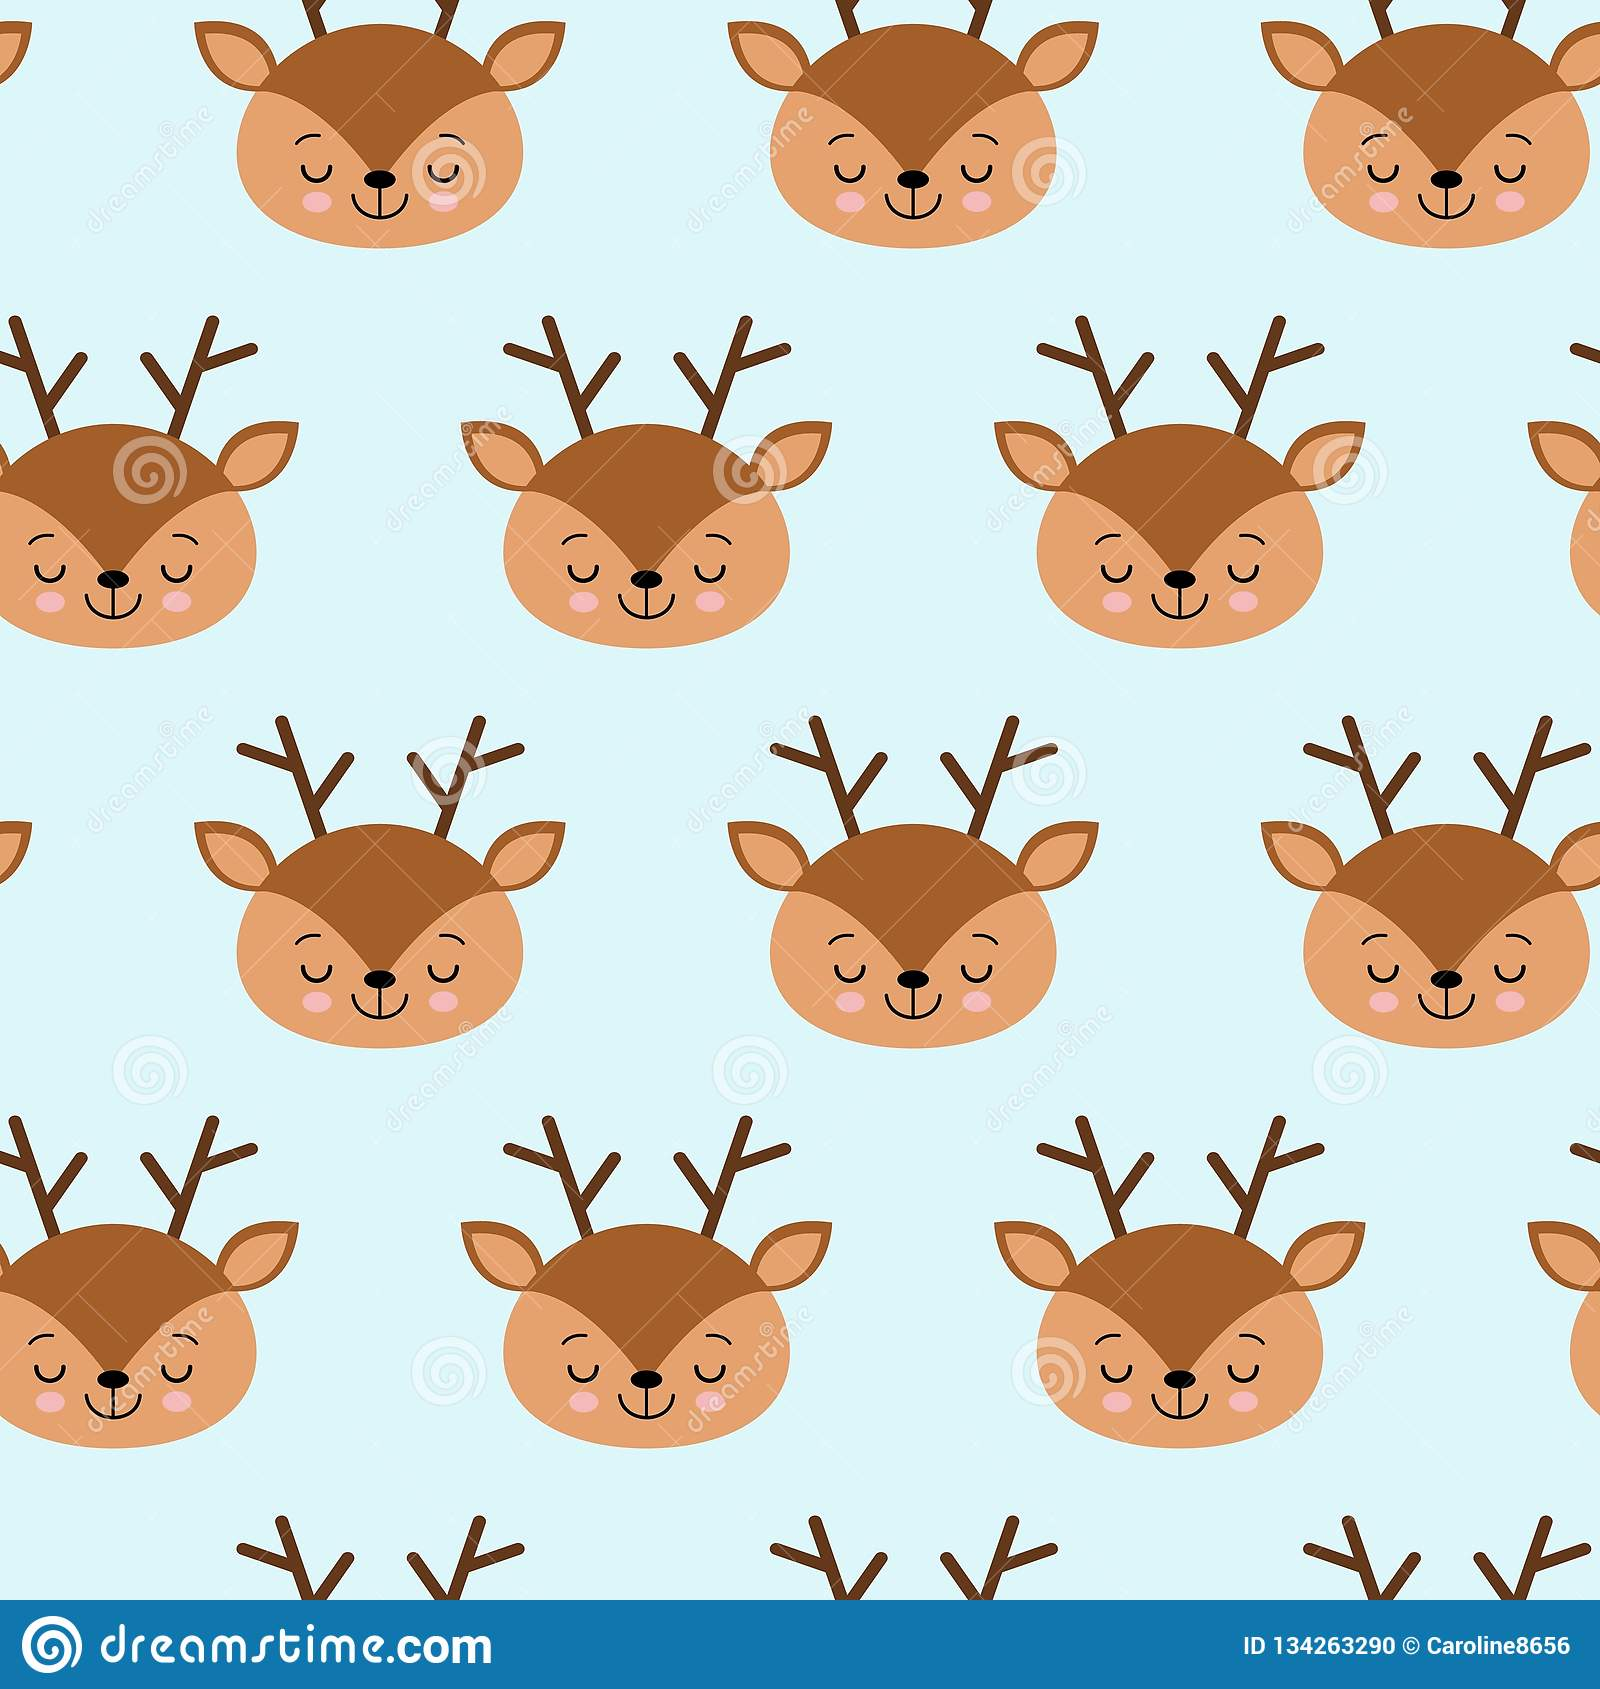 Seamless childish pattern with cute deer. Creative kids texture for fabric, wrapping, textile, wallpaper, apparel